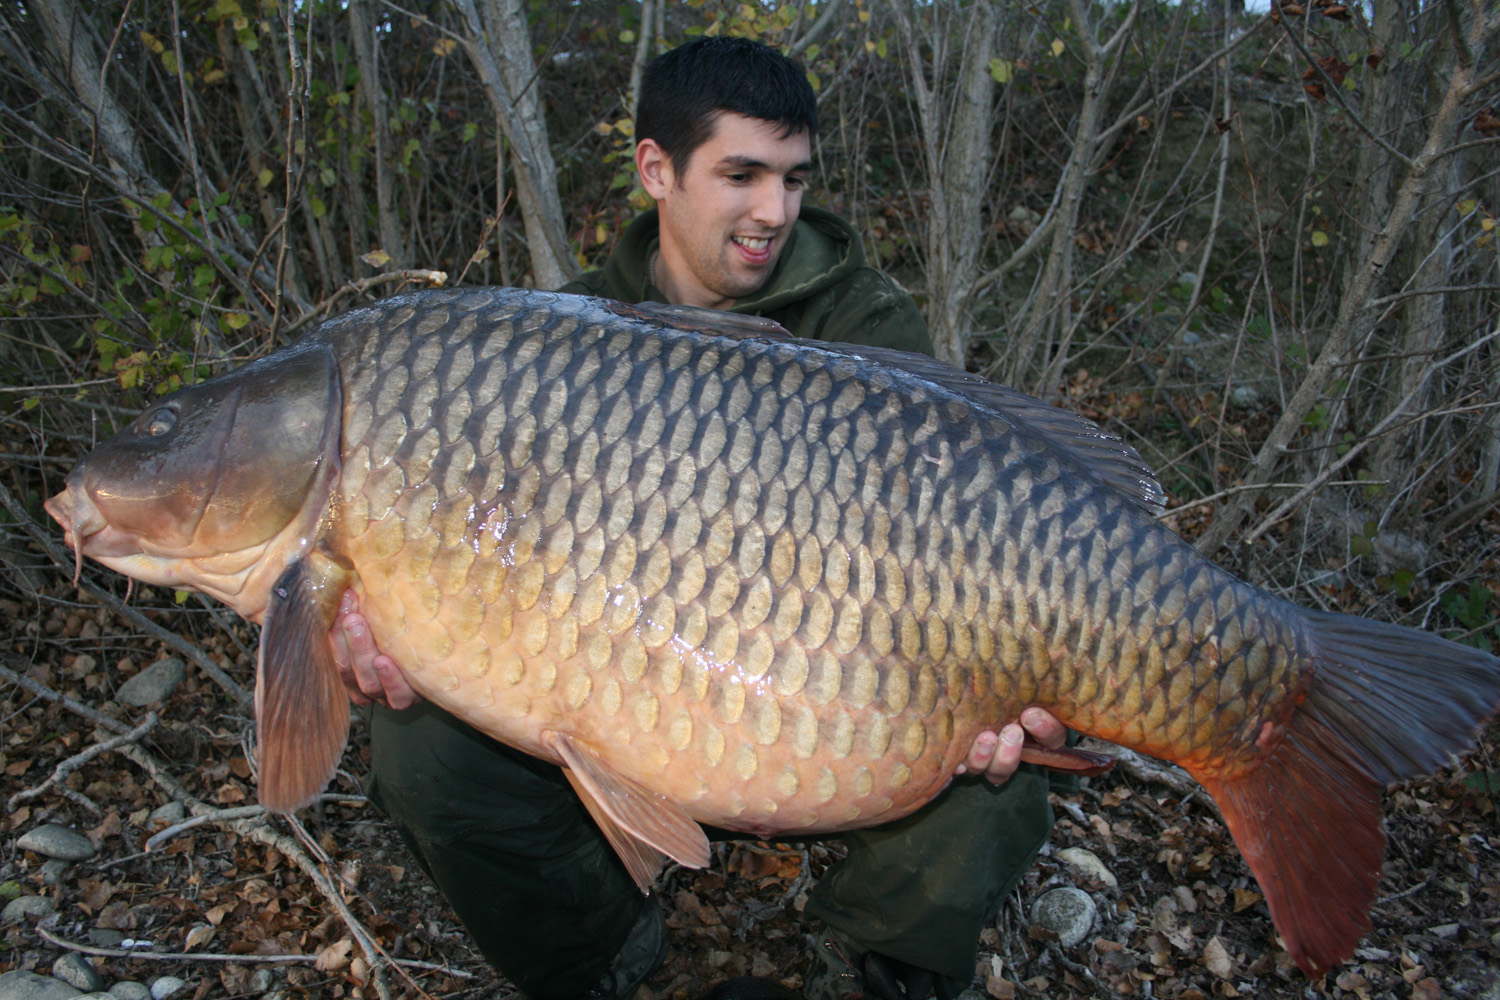 http://www.starbaits.com/fichiers/images/team/gallery/DUCERE_Cedric/3-DUCERE-CEDRIC.JPG